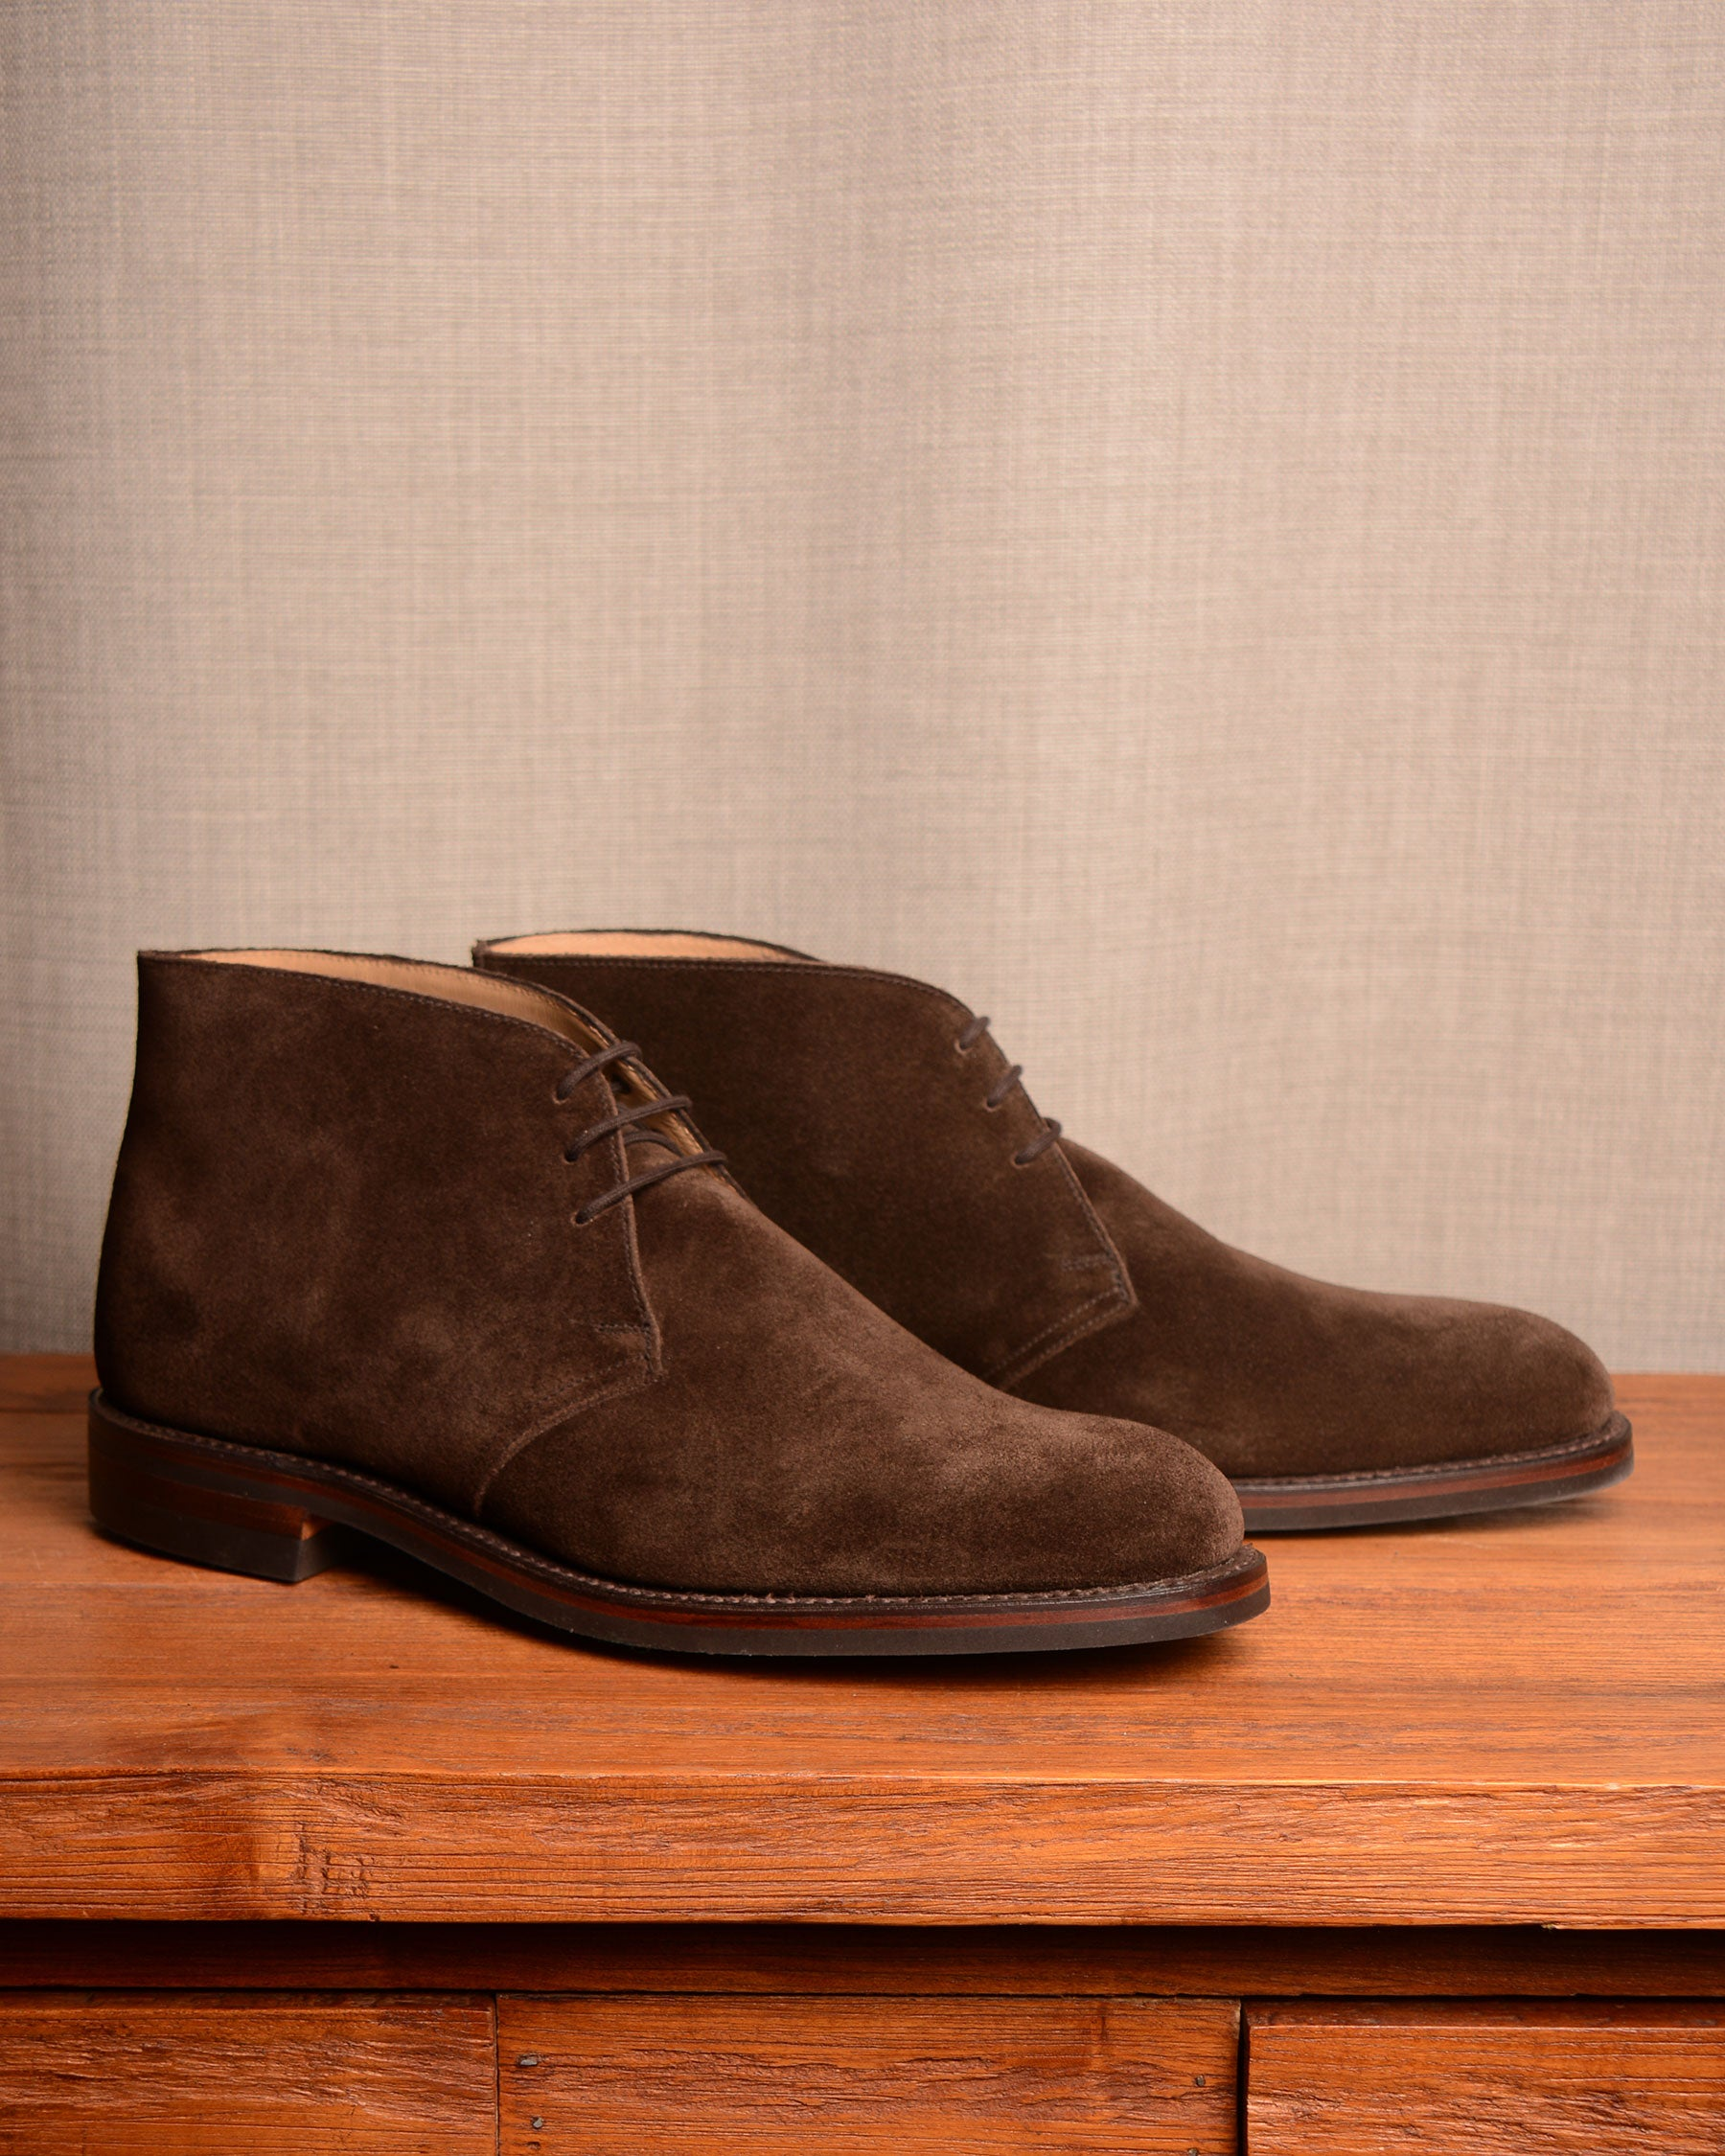 Crockett & Jones Chiltern - Dark Brown Suede